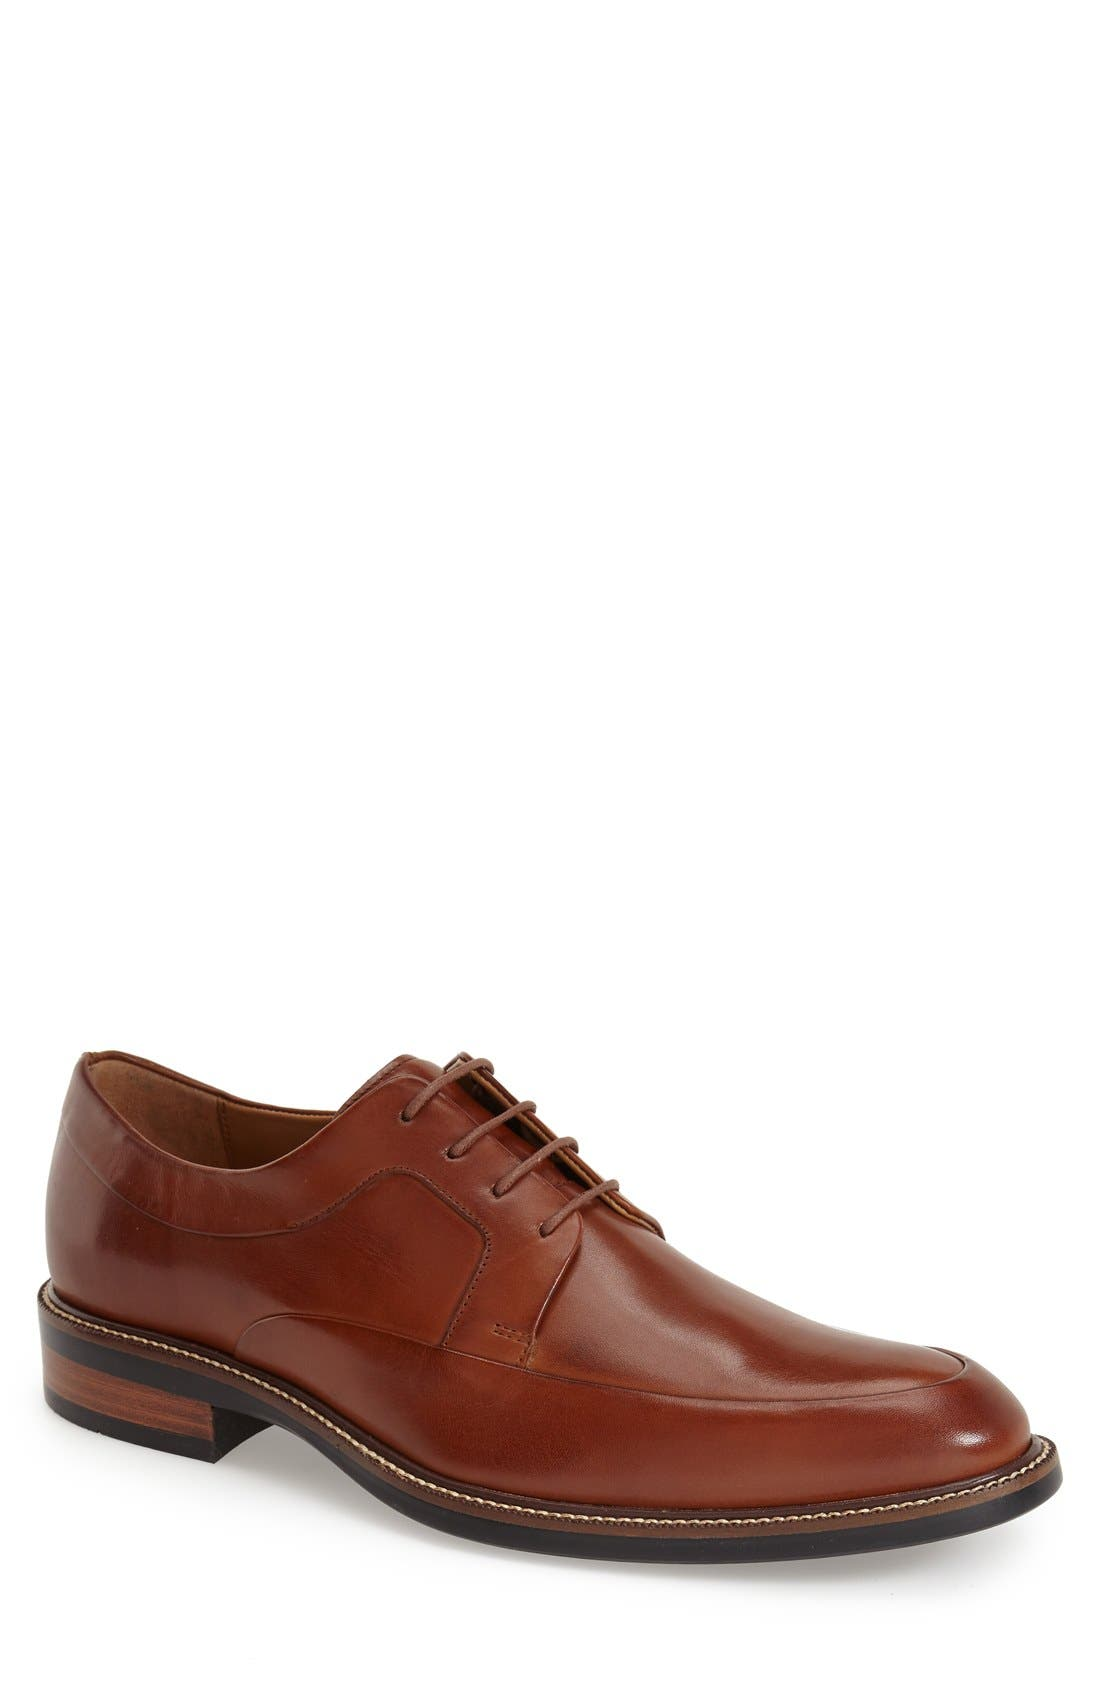 Main Image - Cole Haan 'Warren' Apron Toe Derby (Men)